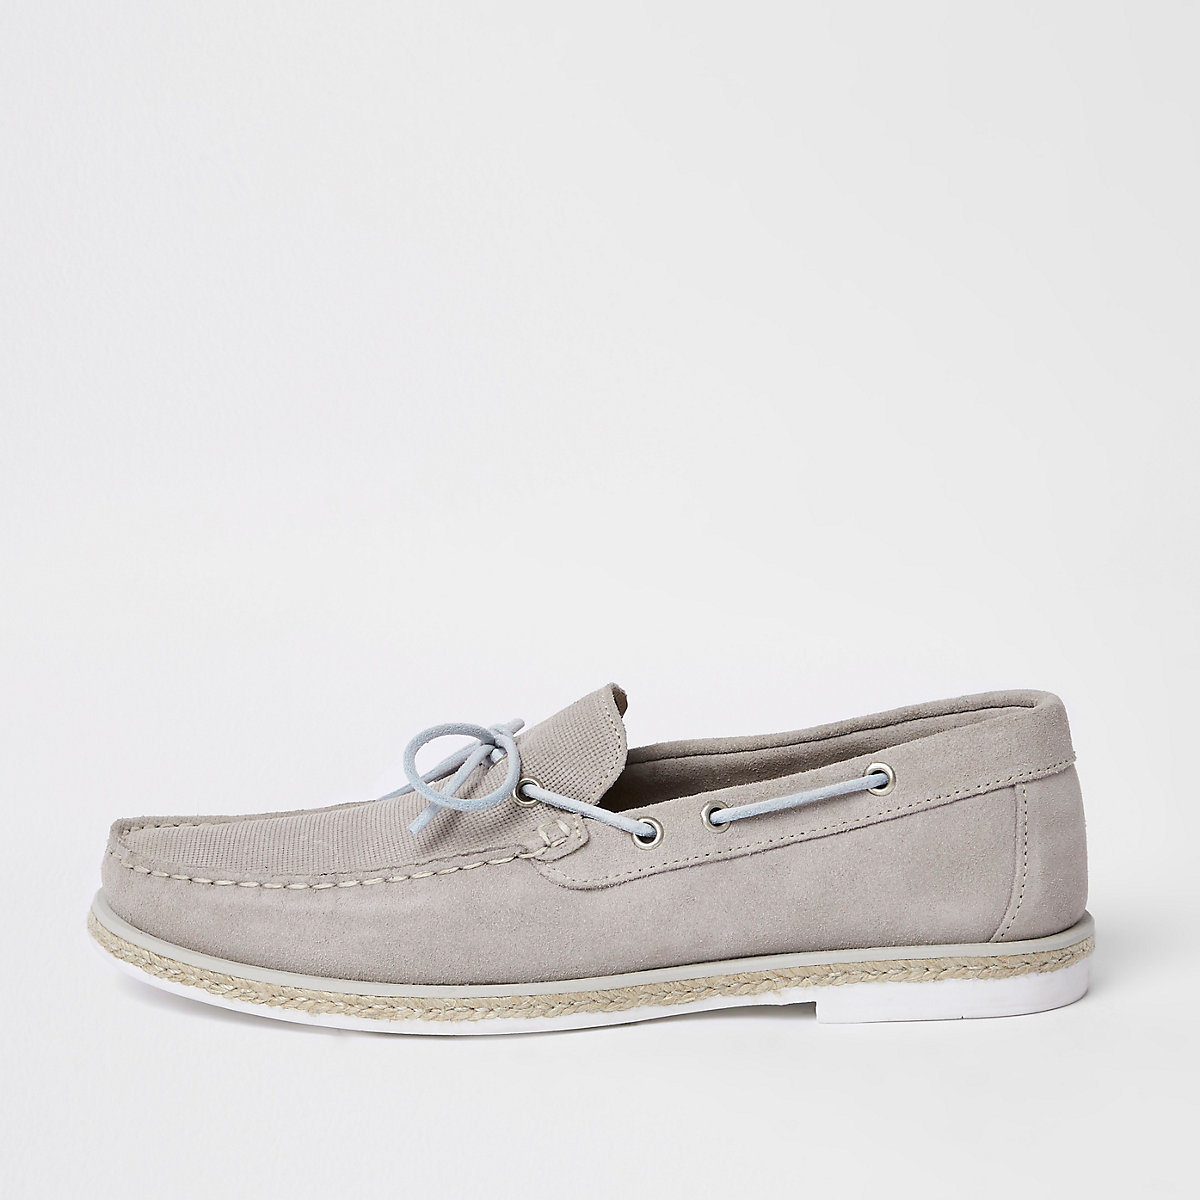 Grey suede boat shoes